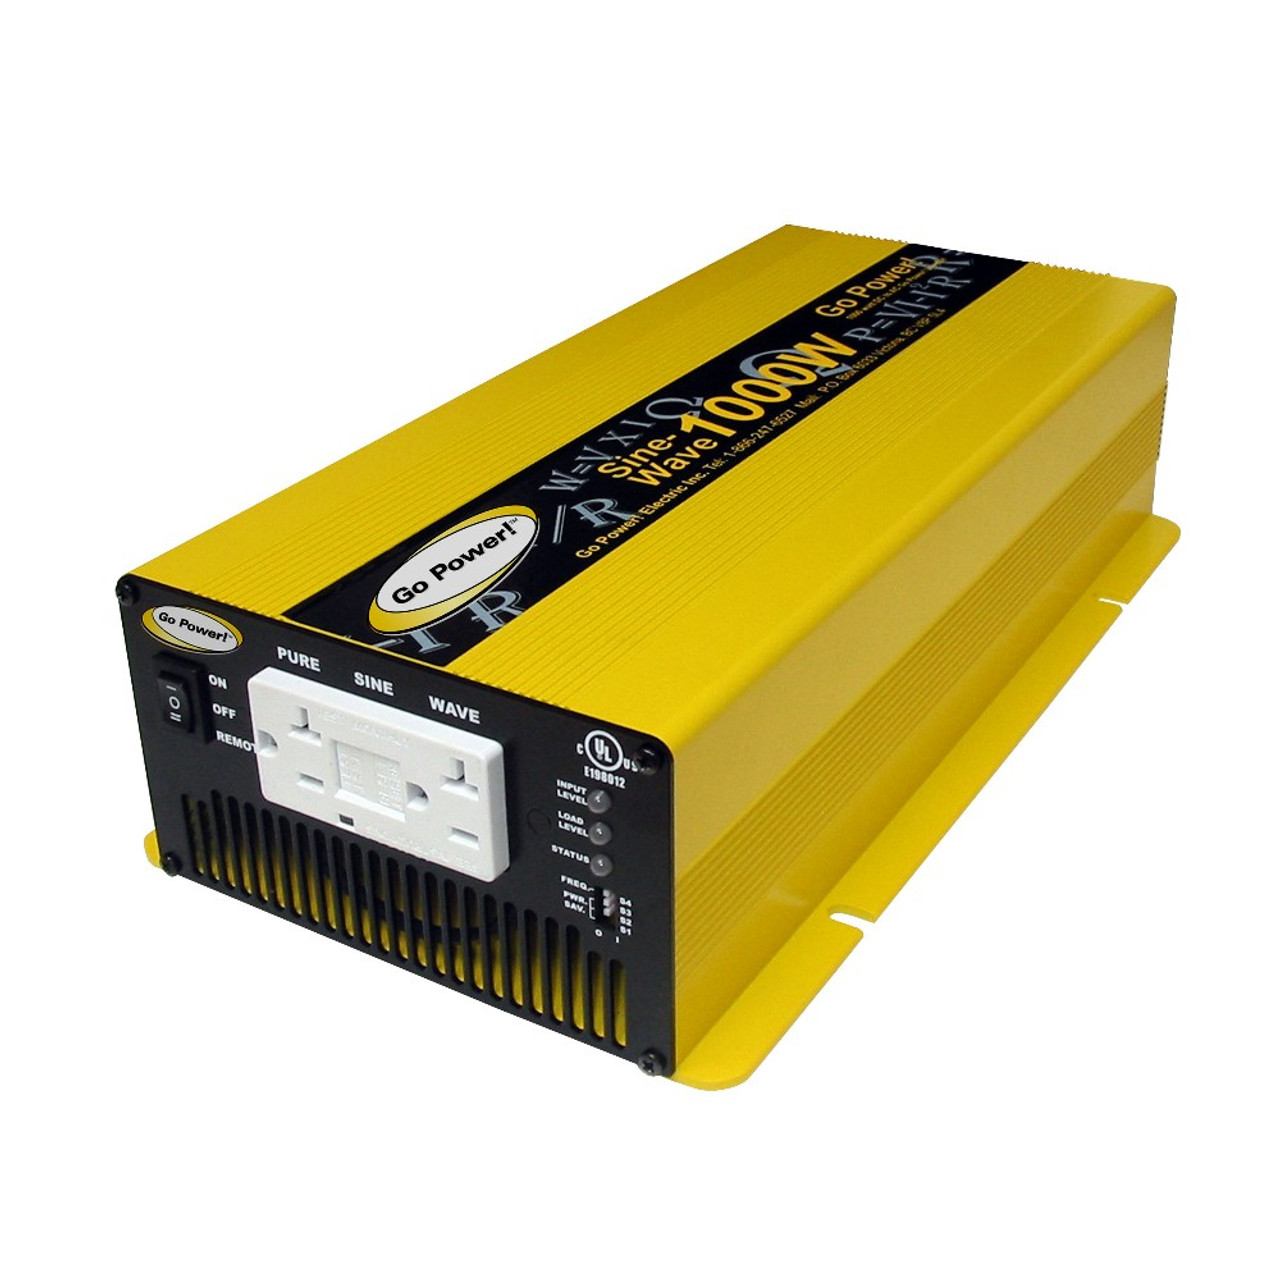 1000 Watt Pure Sine Wave Inverter Go Power 1000 Watt Pure Sine Wave Inverter 24v